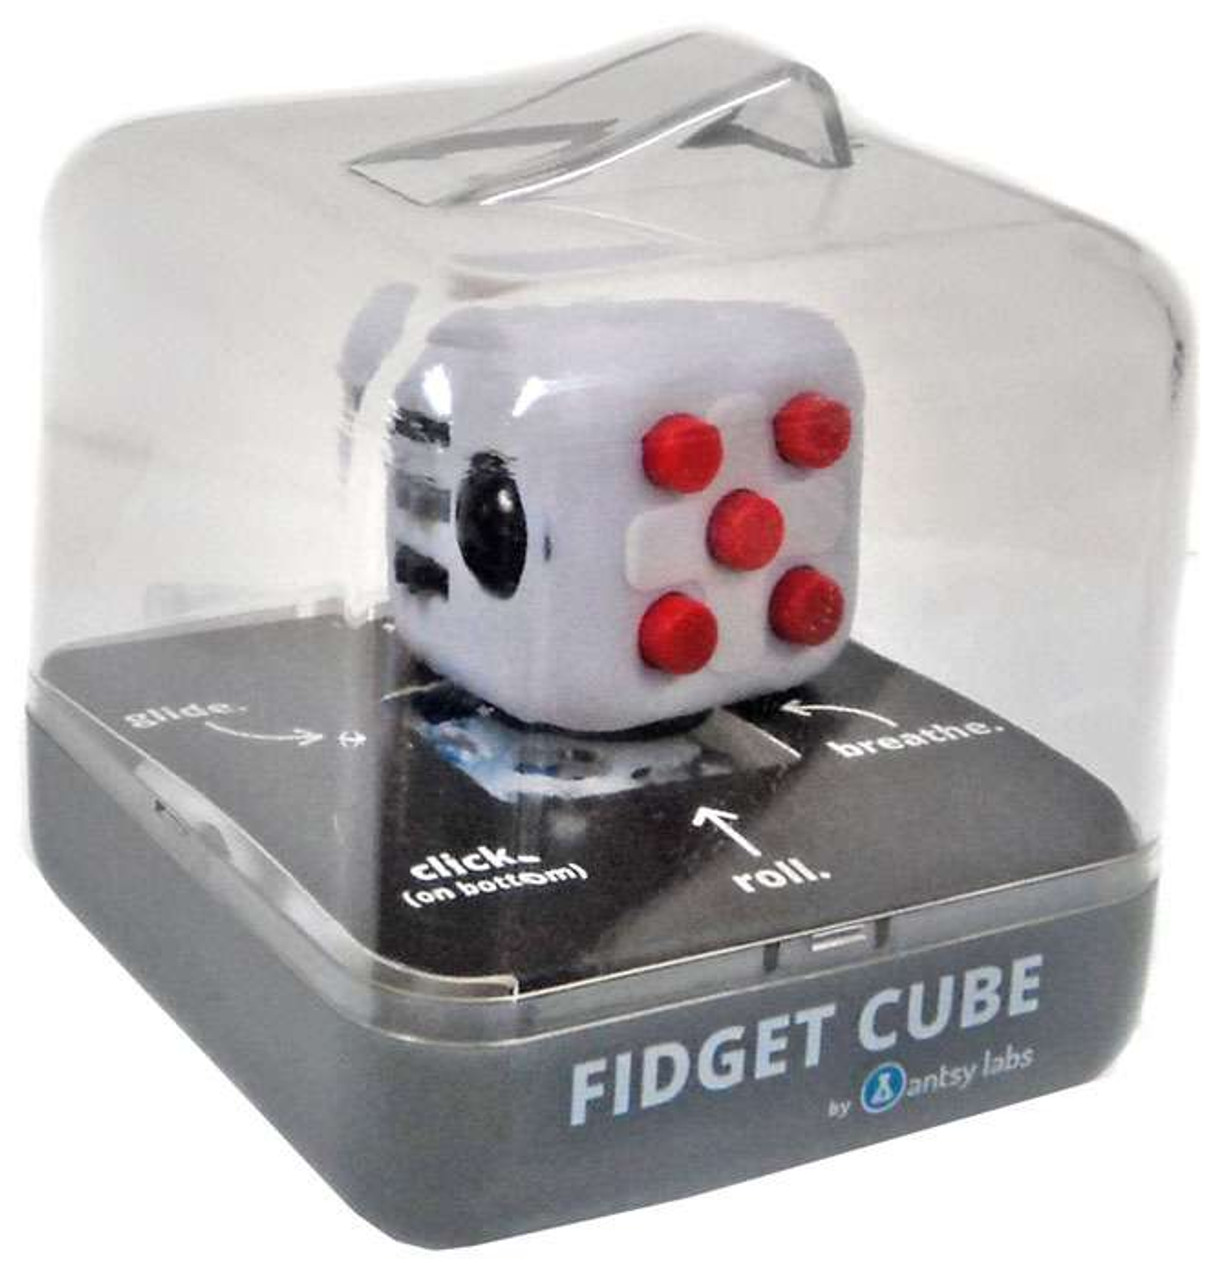 fidget cube authentic white black gray red antsy labs. Black Bedroom Furniture Sets. Home Design Ideas